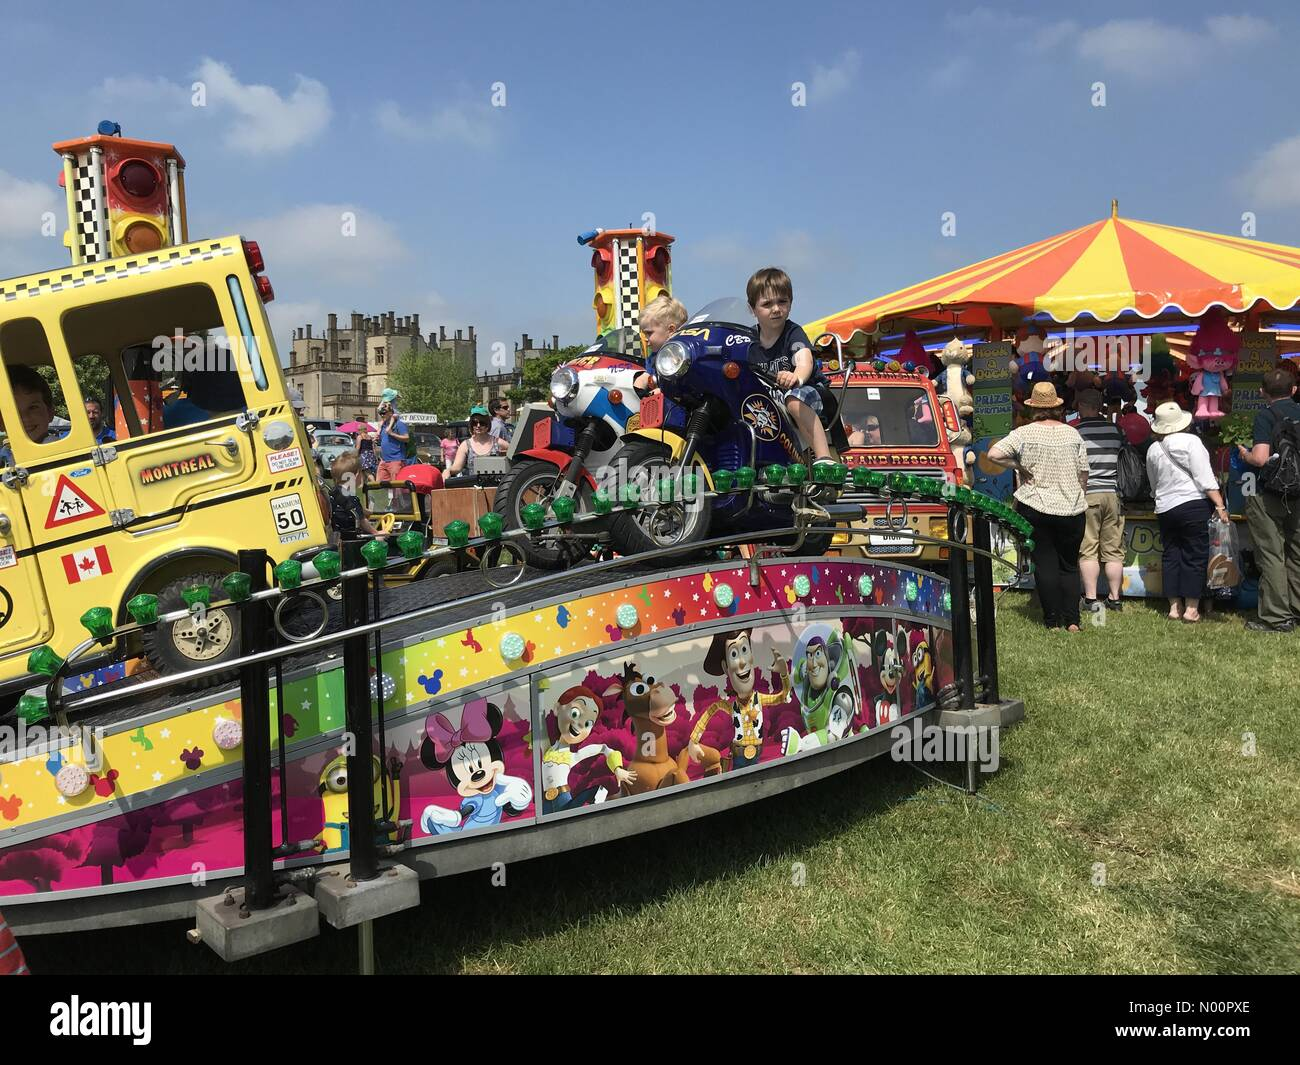 UK Weather : Sherborne Dorset. 28 May 2018. Hot and sunny weather for the annual Sherborne Castle Country Fair on bank holiday Monday - Stock Image